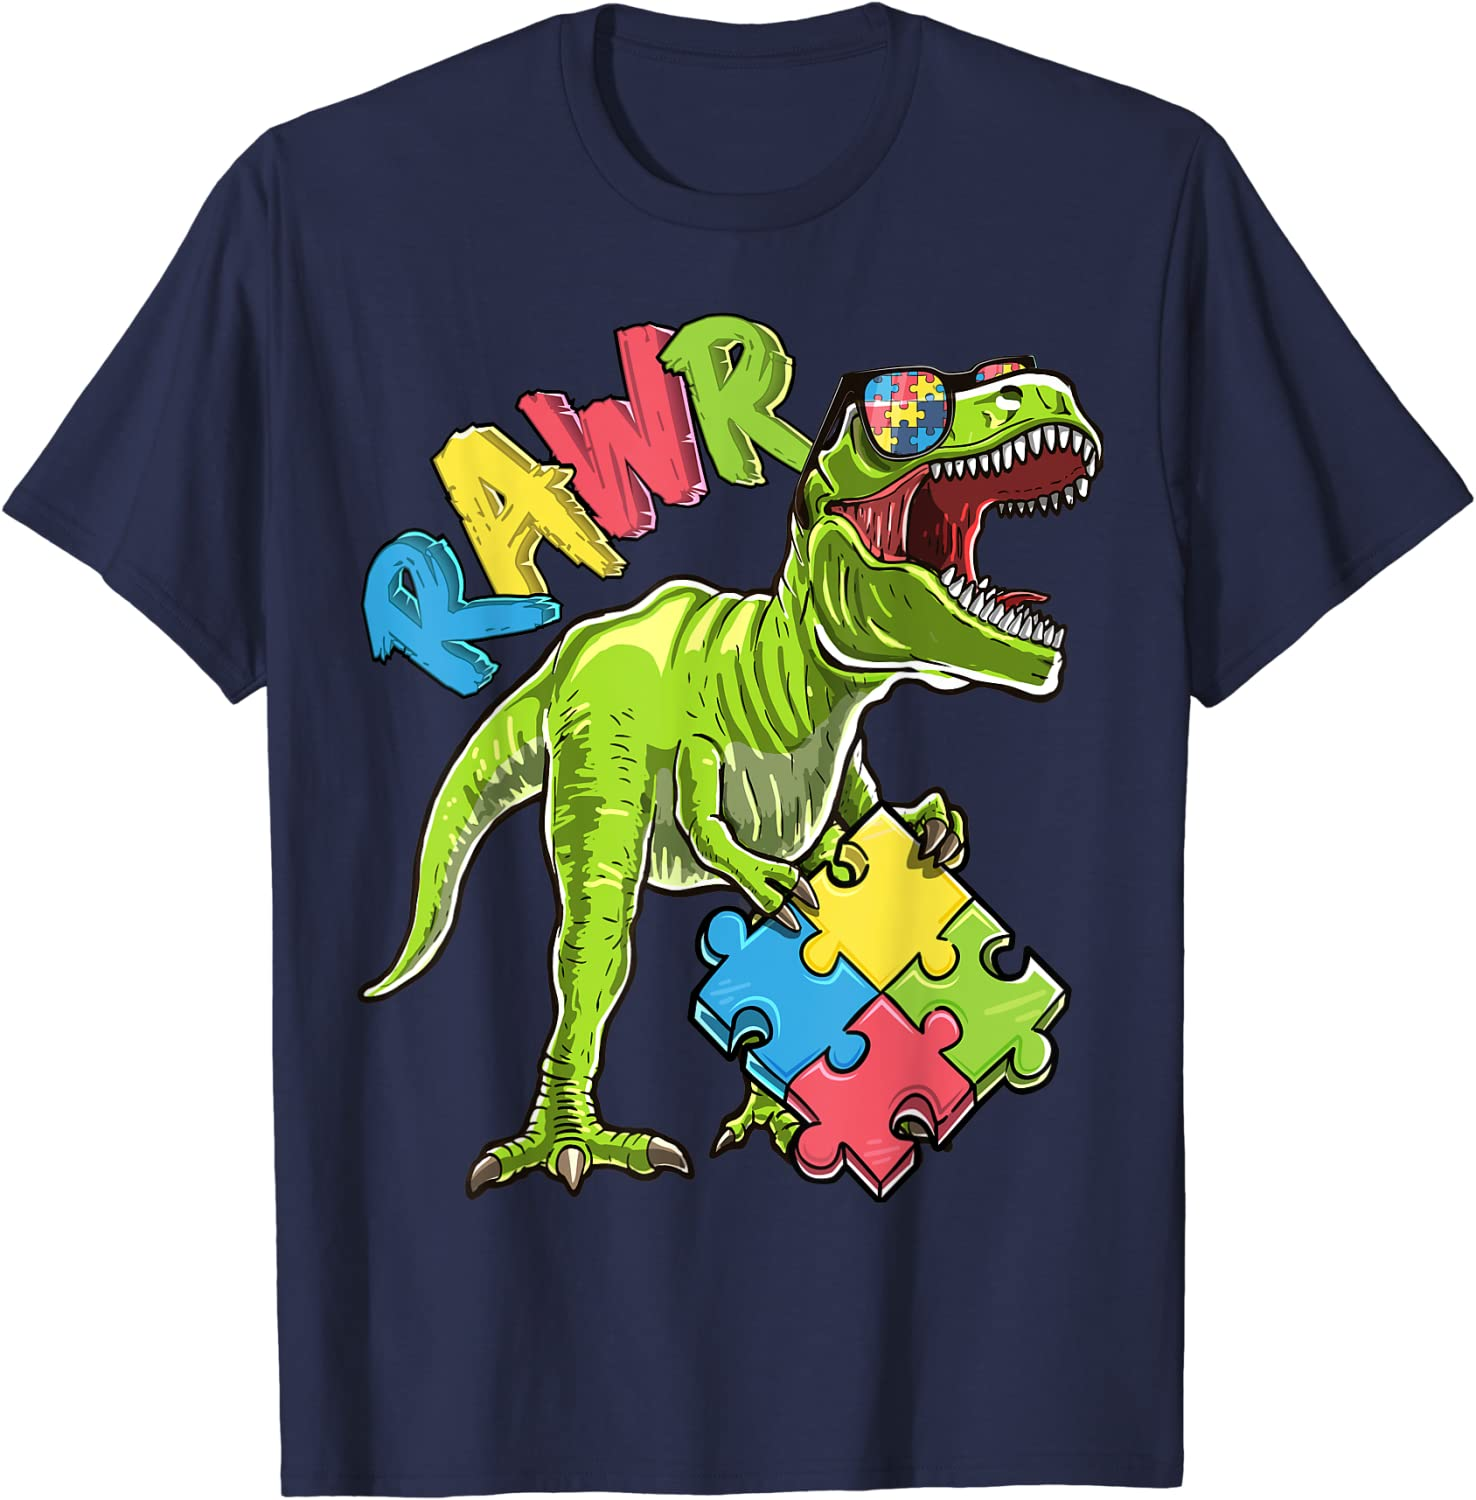 I See Your Colors Autism Dinosaur That/'s Why I Love You Gift Top Autism T-shirt